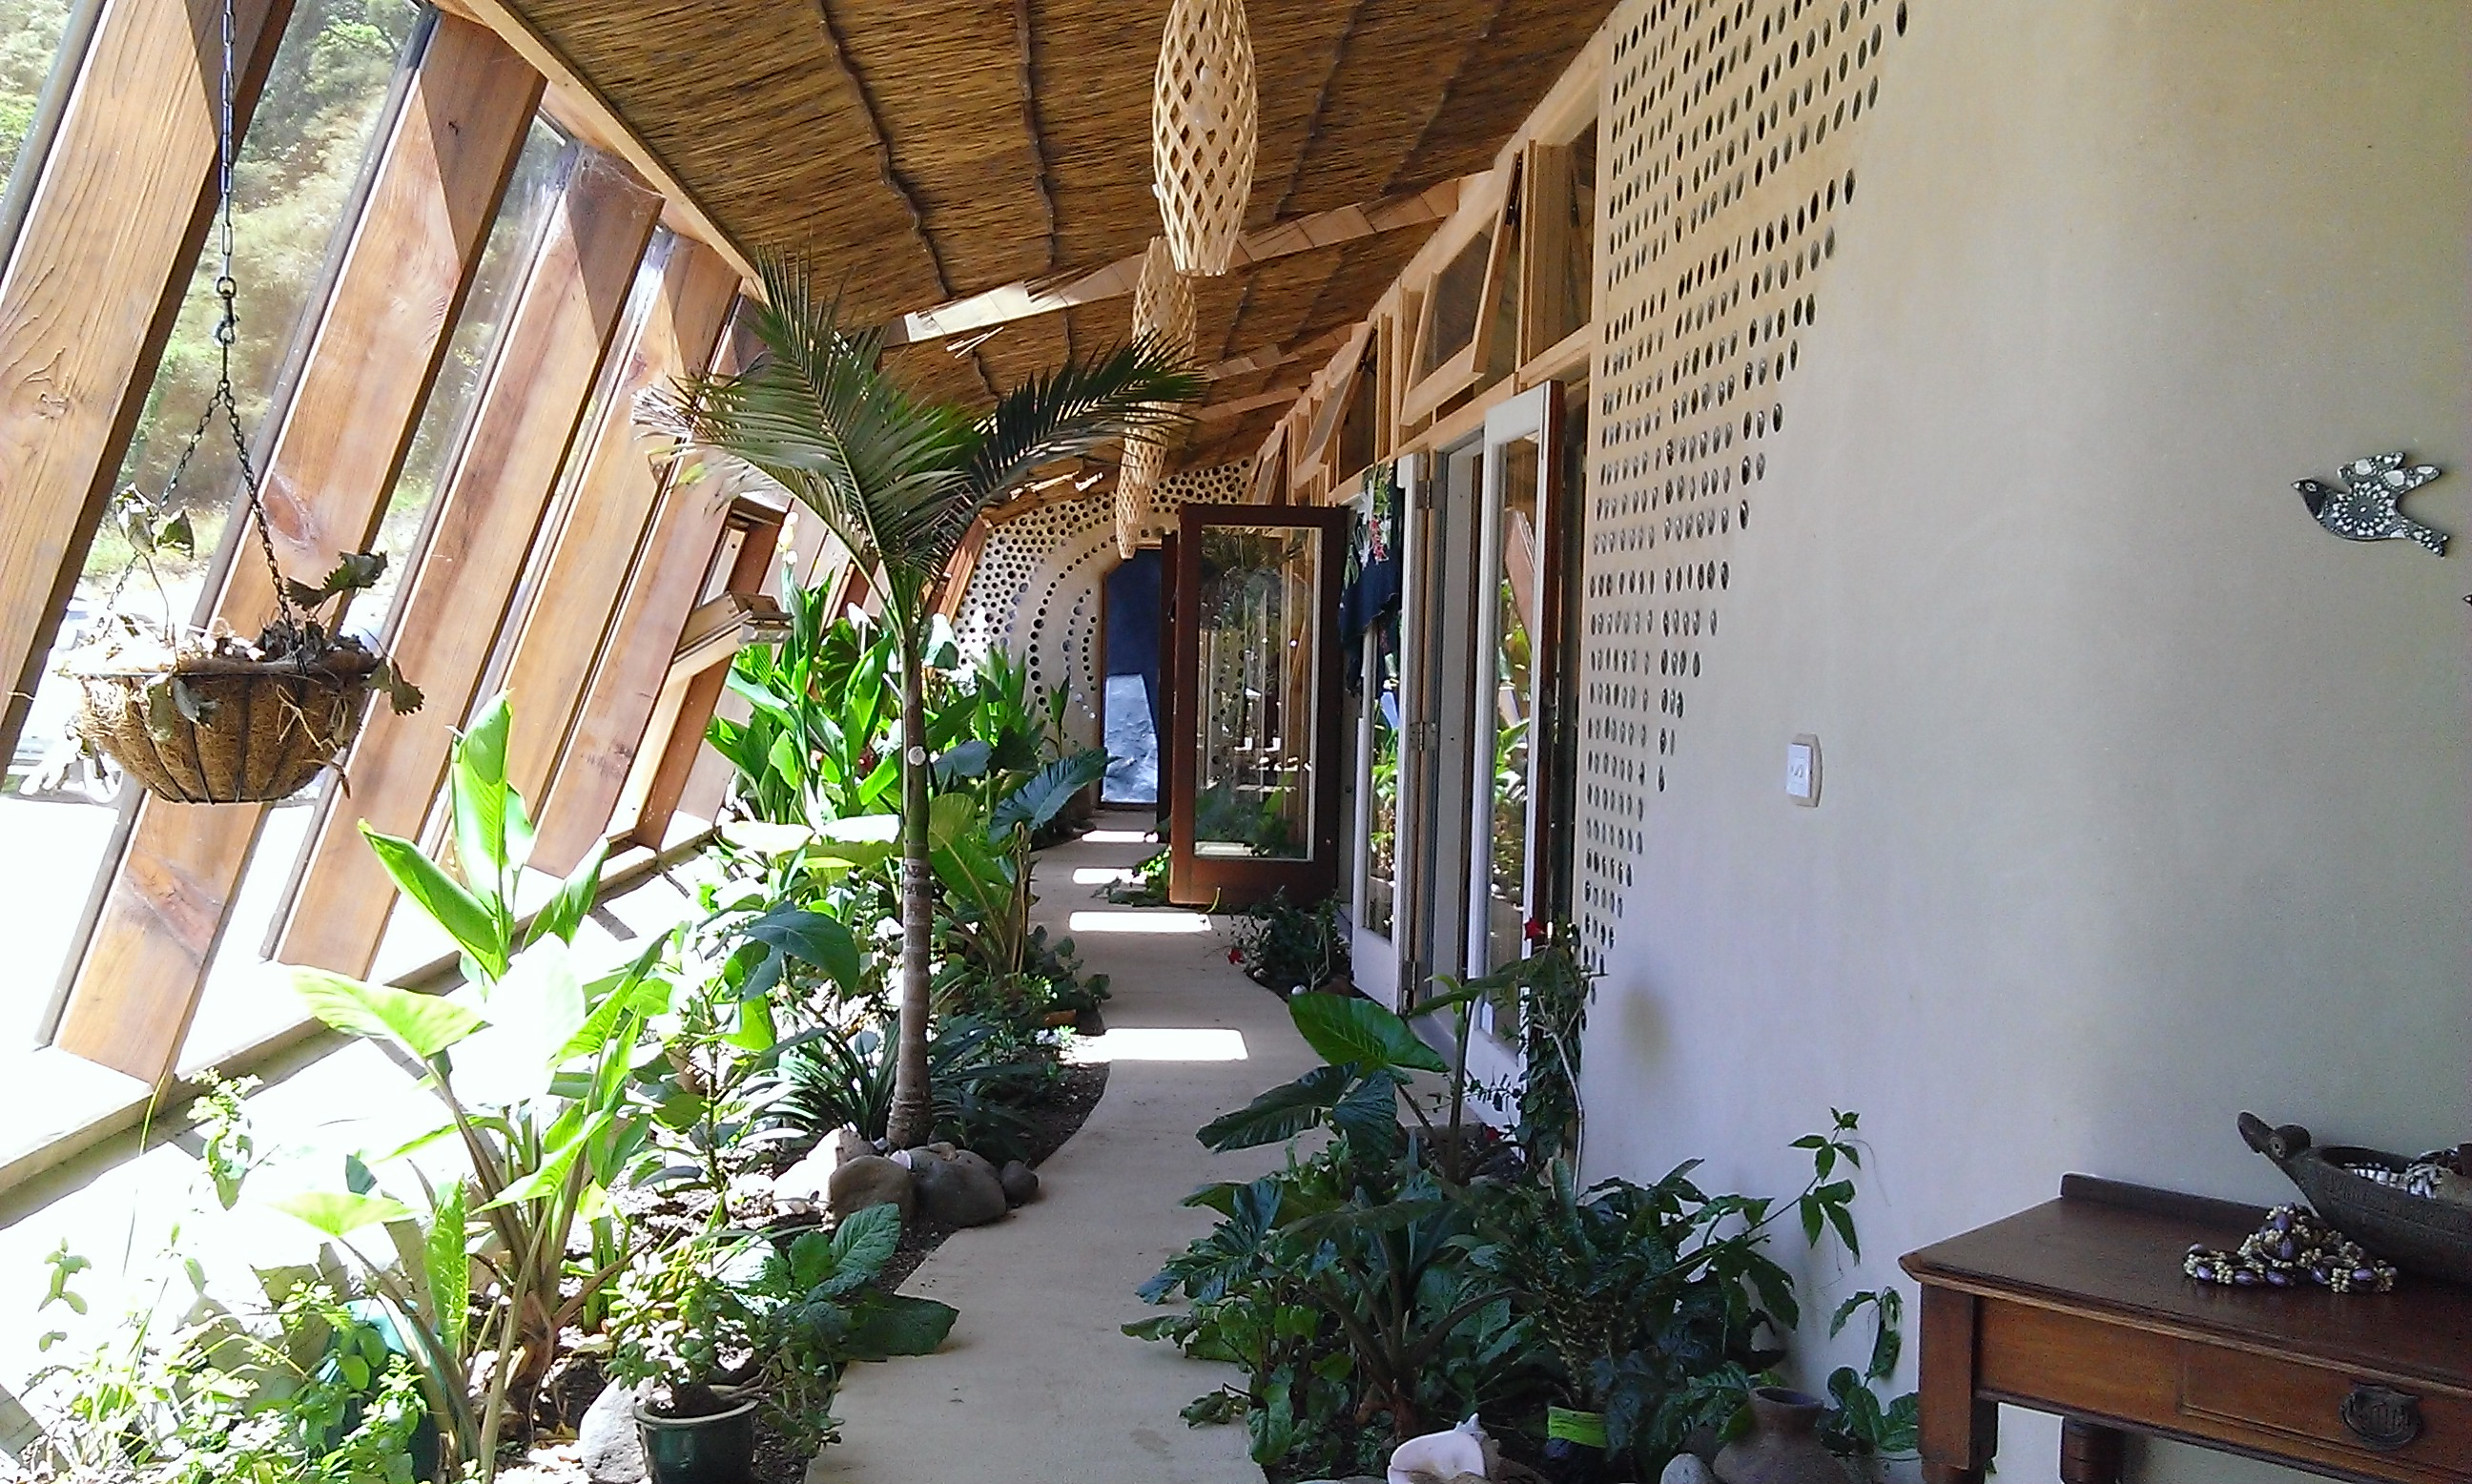 Earthship new zealand category archives earthship nz news for Rooms interior design hamilton nz